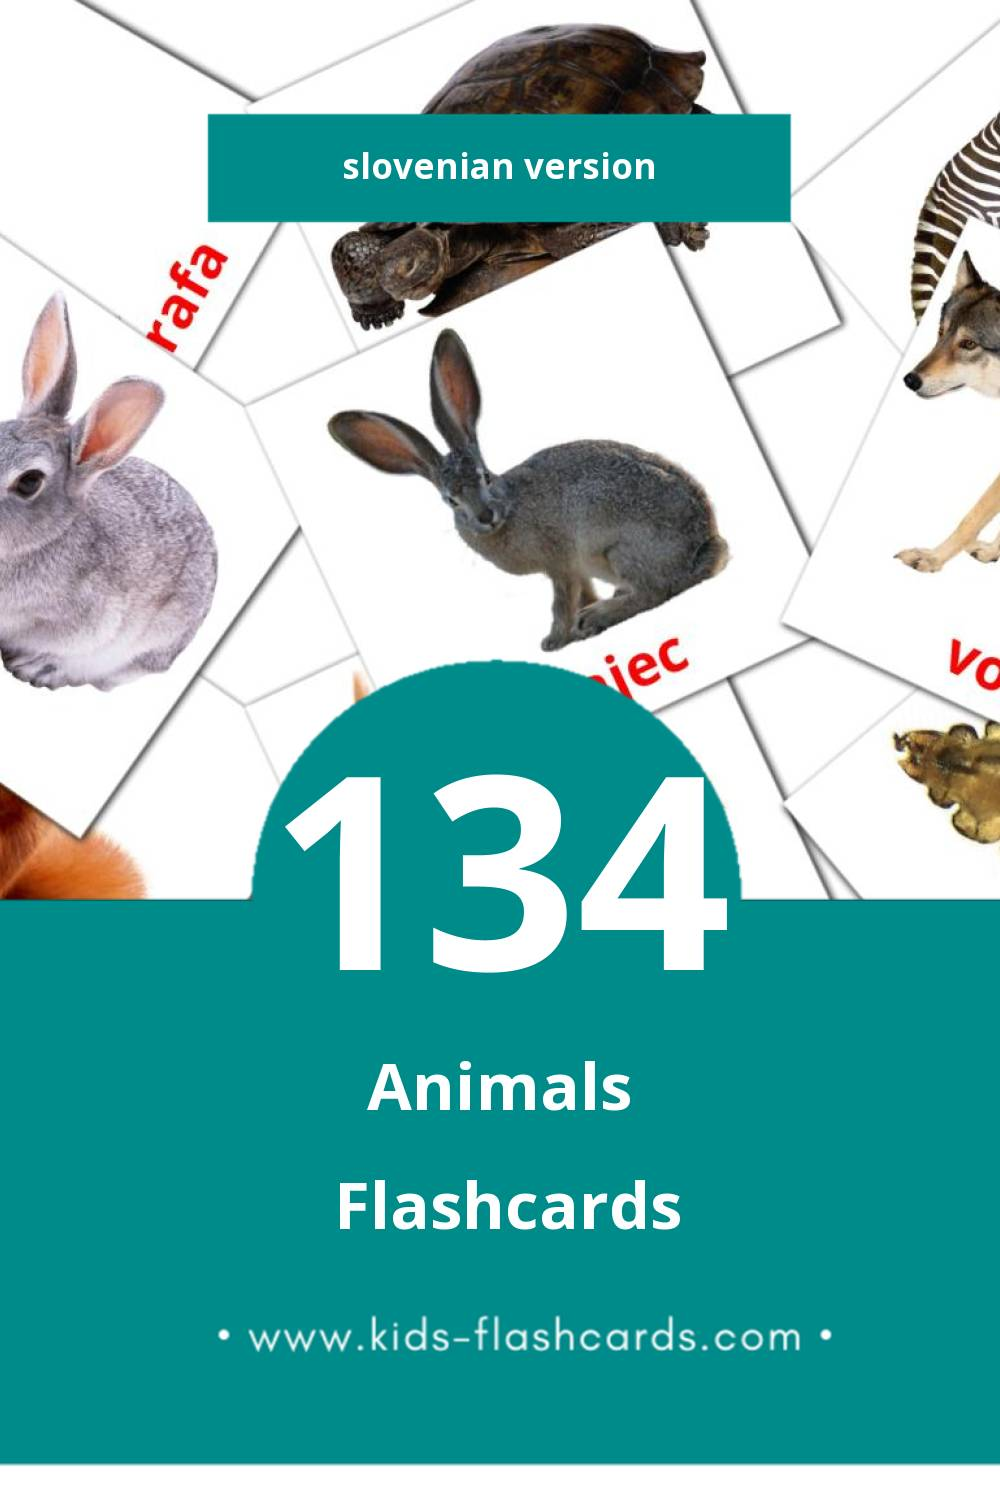 Visual ŽIVALI Flashcards for Toddlers (46 cards in Slovenian)